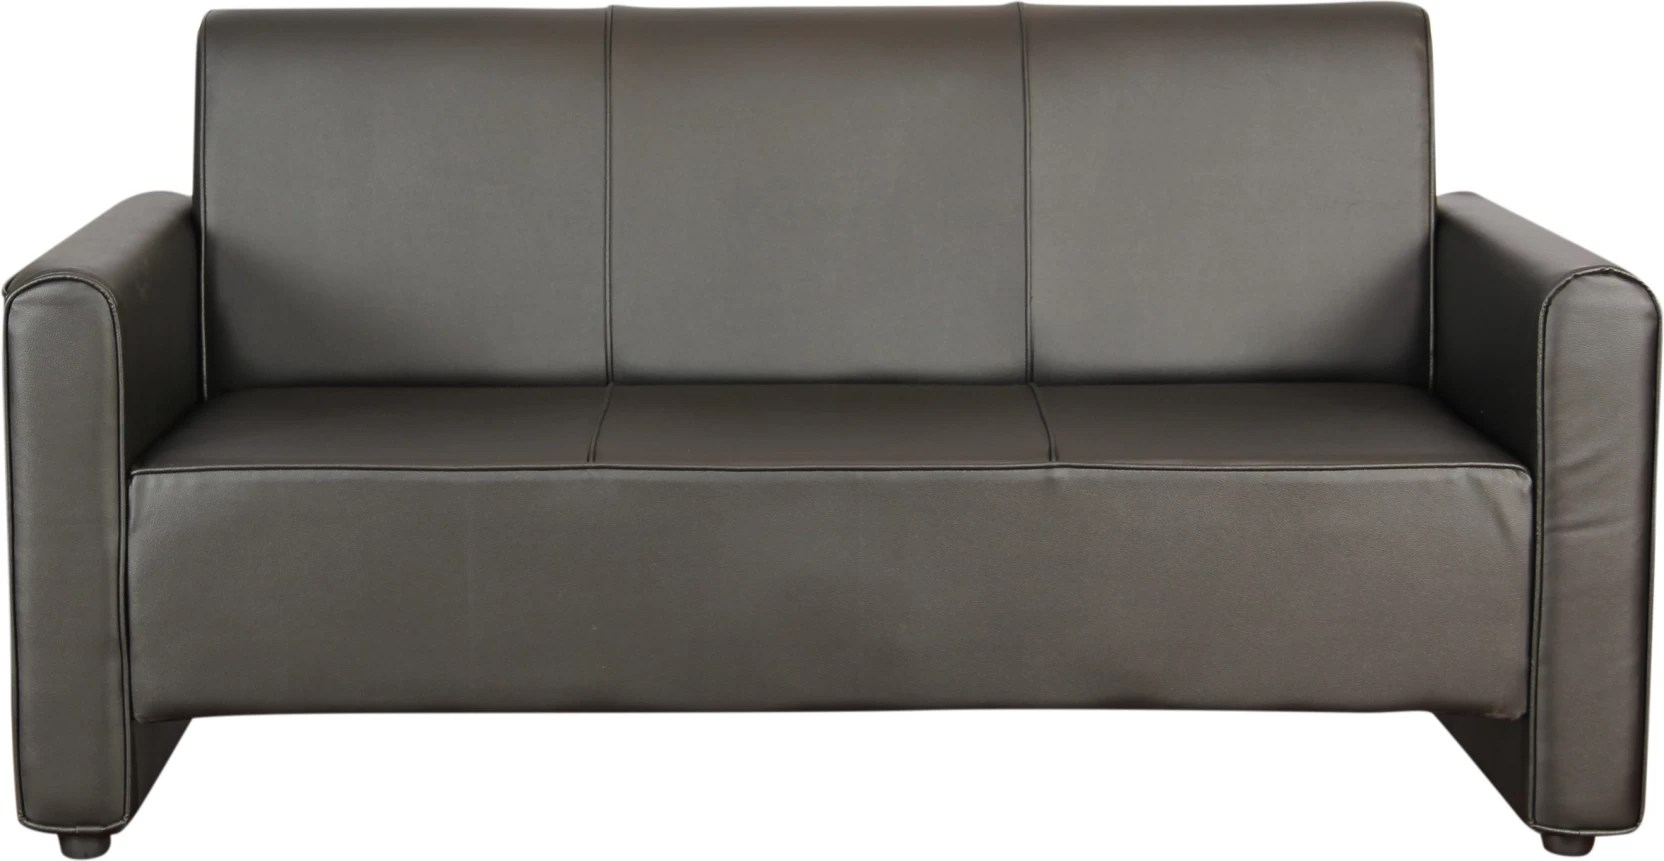 black leather sofa set price in india sofas glasgow uk kurlon bullet leatherette 3 seater